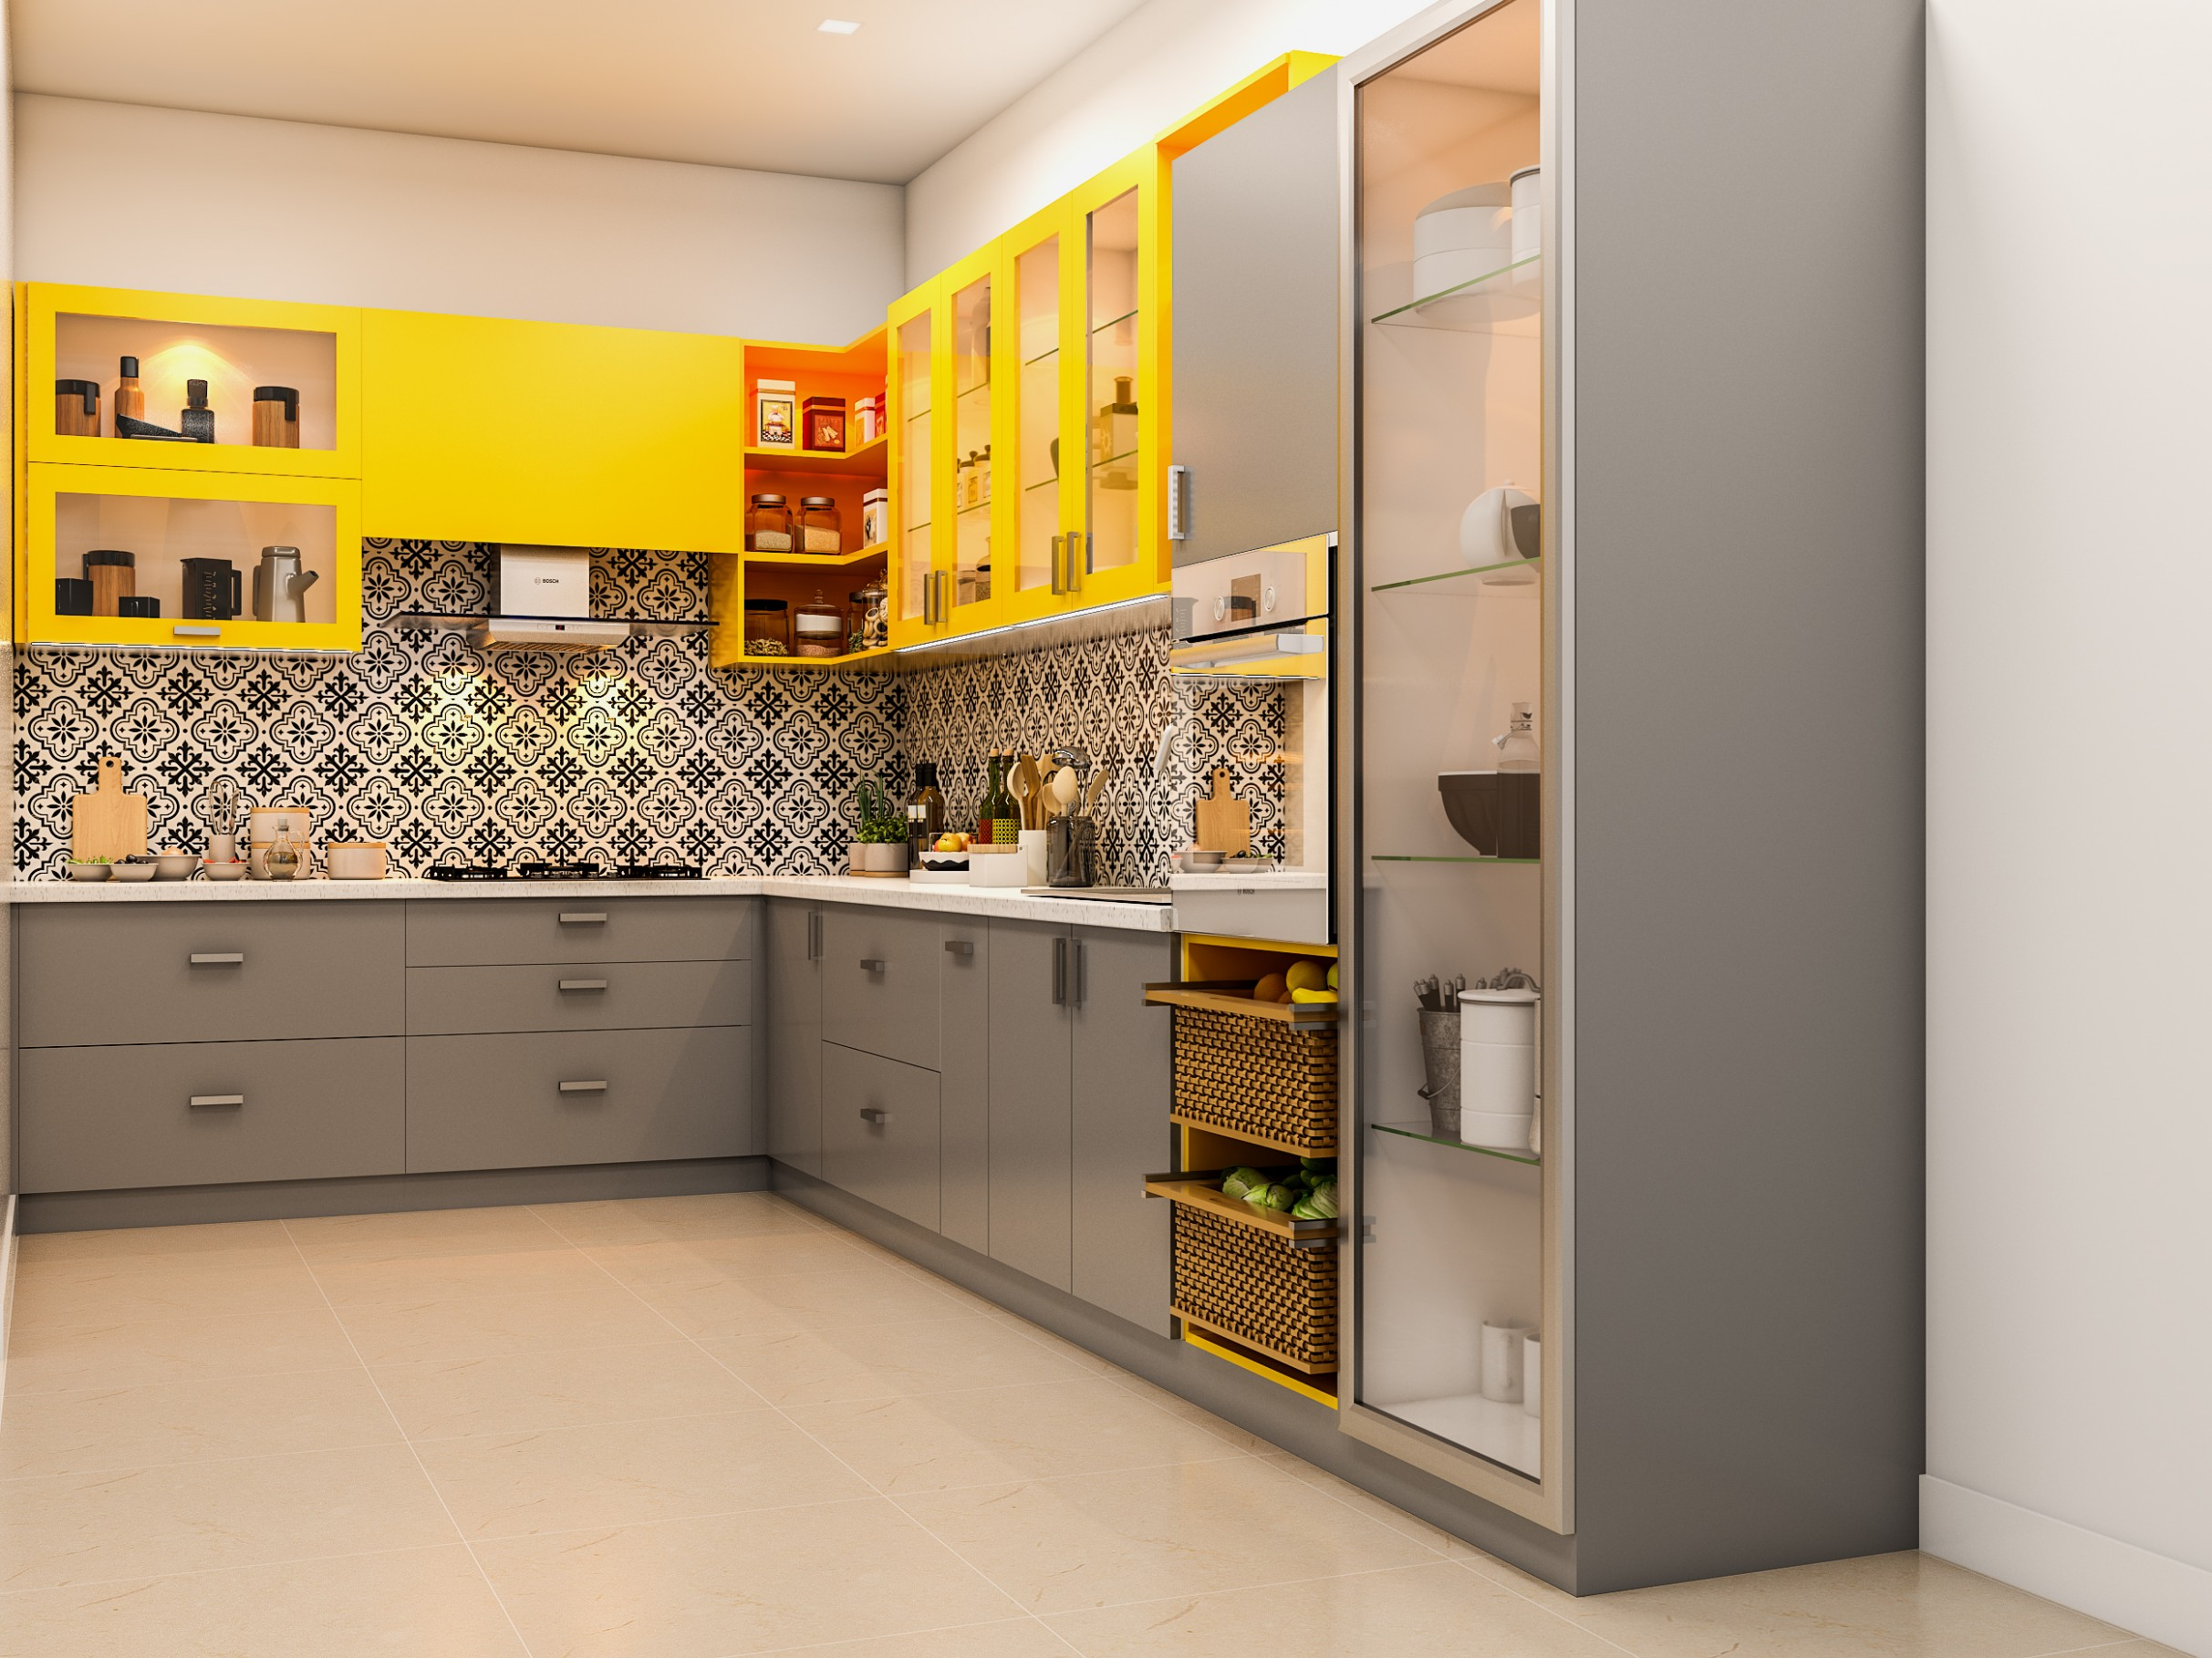 Best Modular Kitchen Designers in Bangalore  Best Interior  - Used Modular Kitchen Cabinets Bangalore